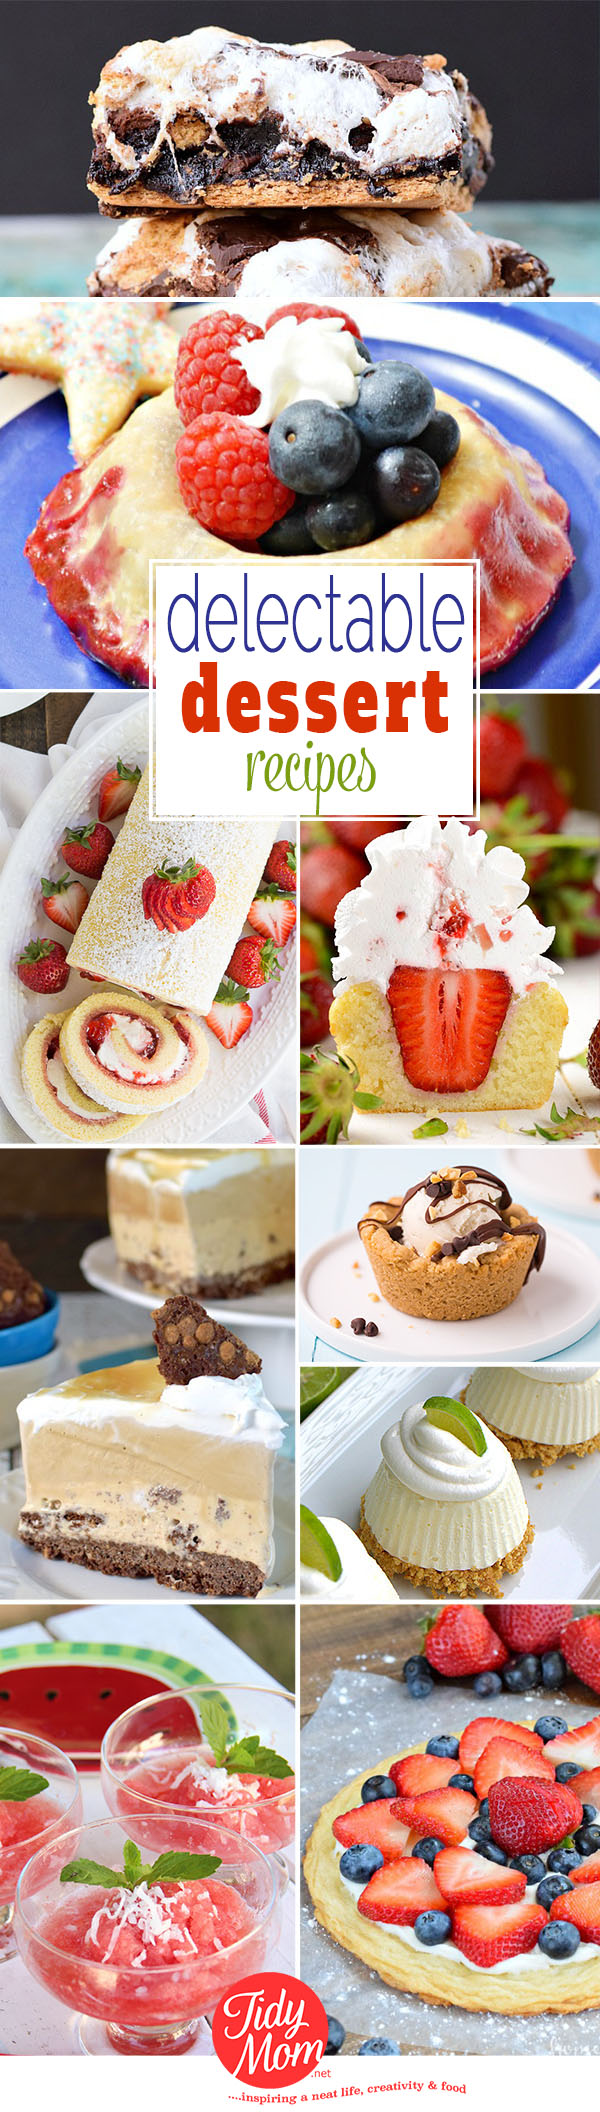 From juicy summer berries and ice cream pie to S'mores brownies, you'll want to end your next meal with one of these Delectable Dessert recipes at TidyMom.net